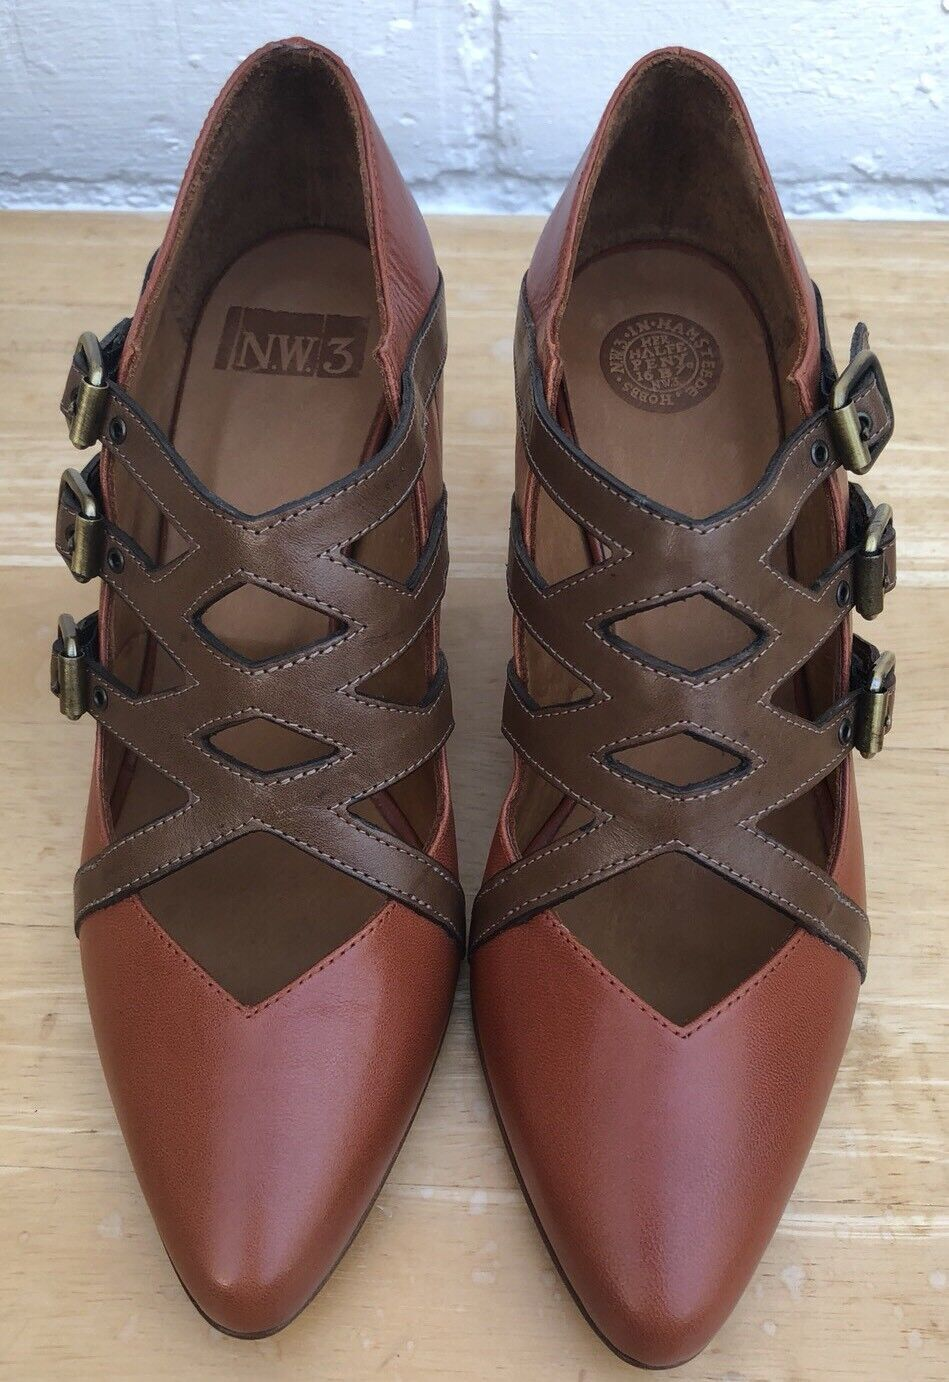 New Hobbs NW3 Court Court Court shoes 3 36 Tan Brown Leather Block Heel Pointy e3fa34